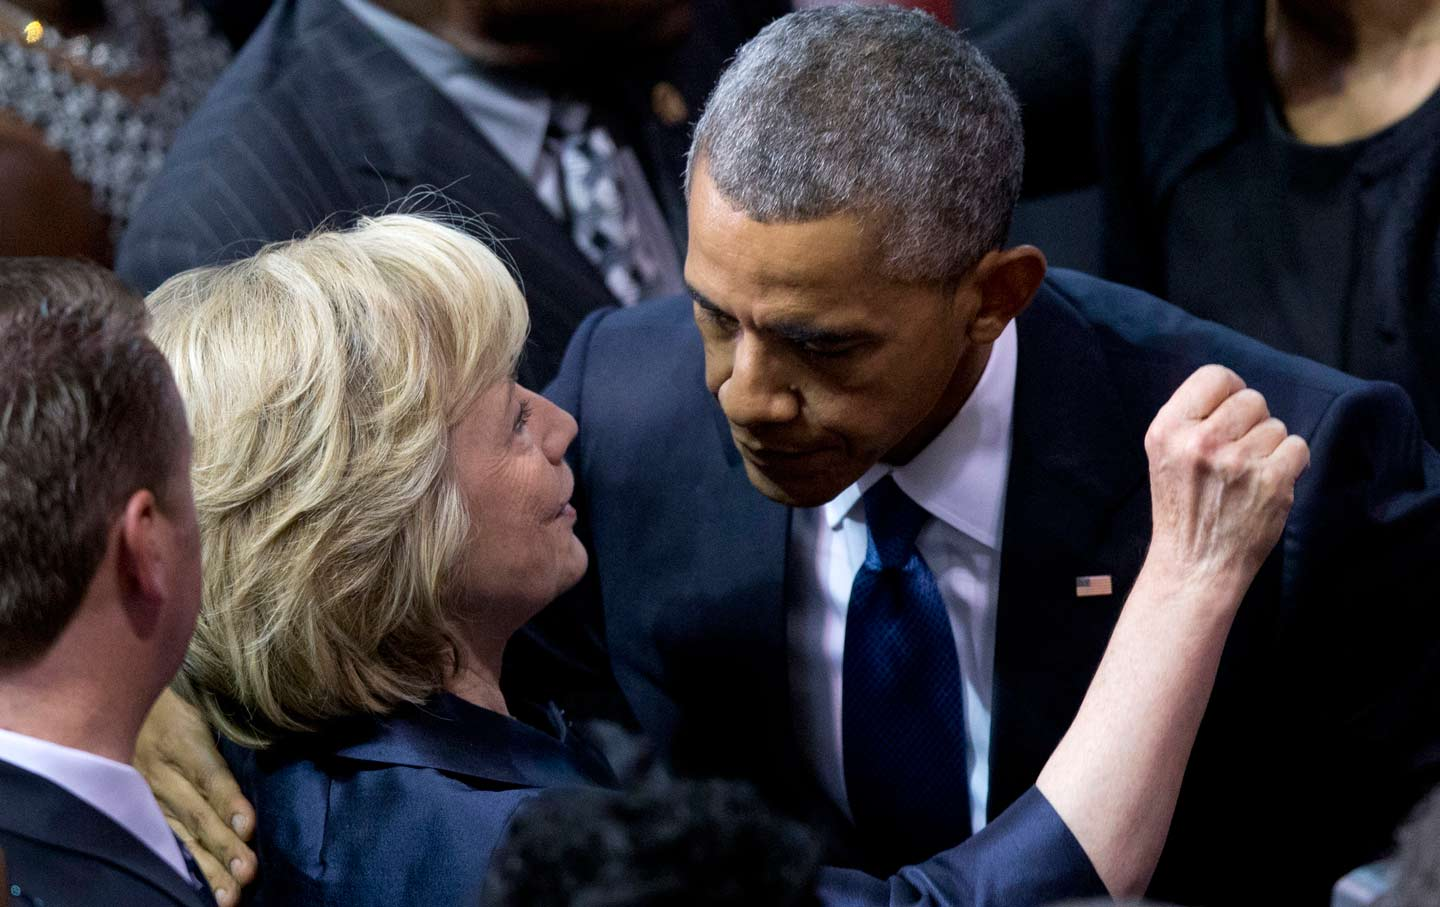 Barack Obama, Hillary Clinton, Potential explosive devices, Former US President, US former First Lady, US Secret Service, Federal Bureau of Investigation, Washington, New York, America, United States, World news